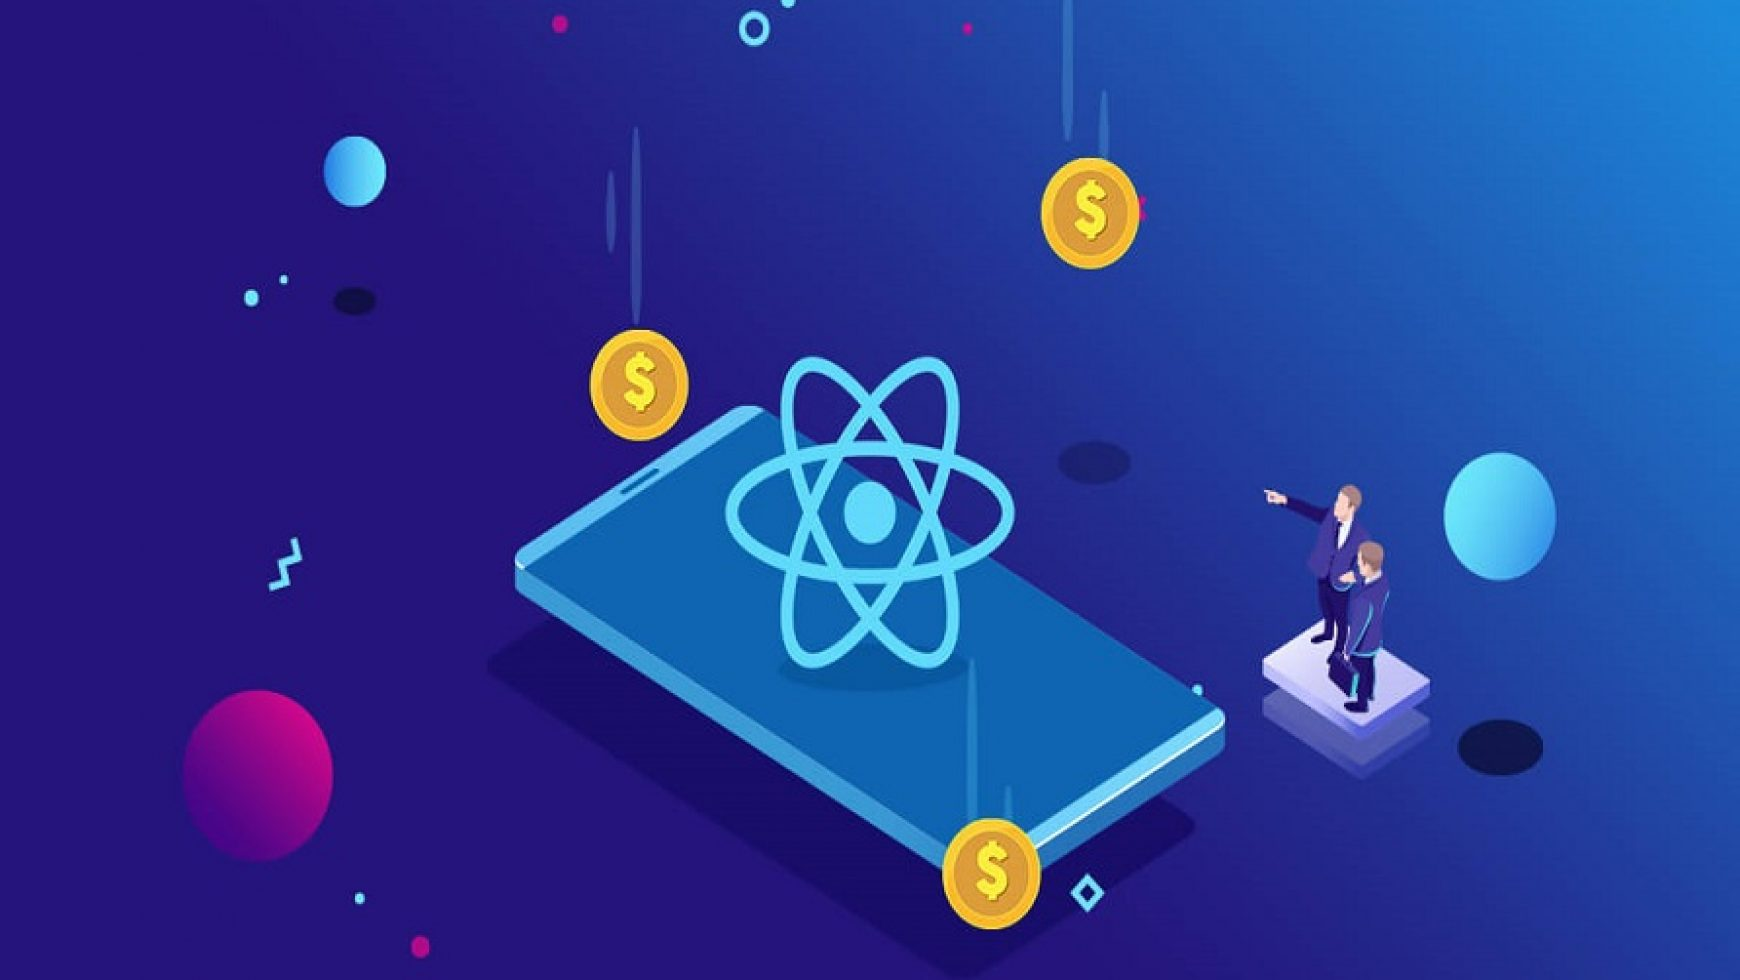 How App Development With React Native Can Reduce Cost?